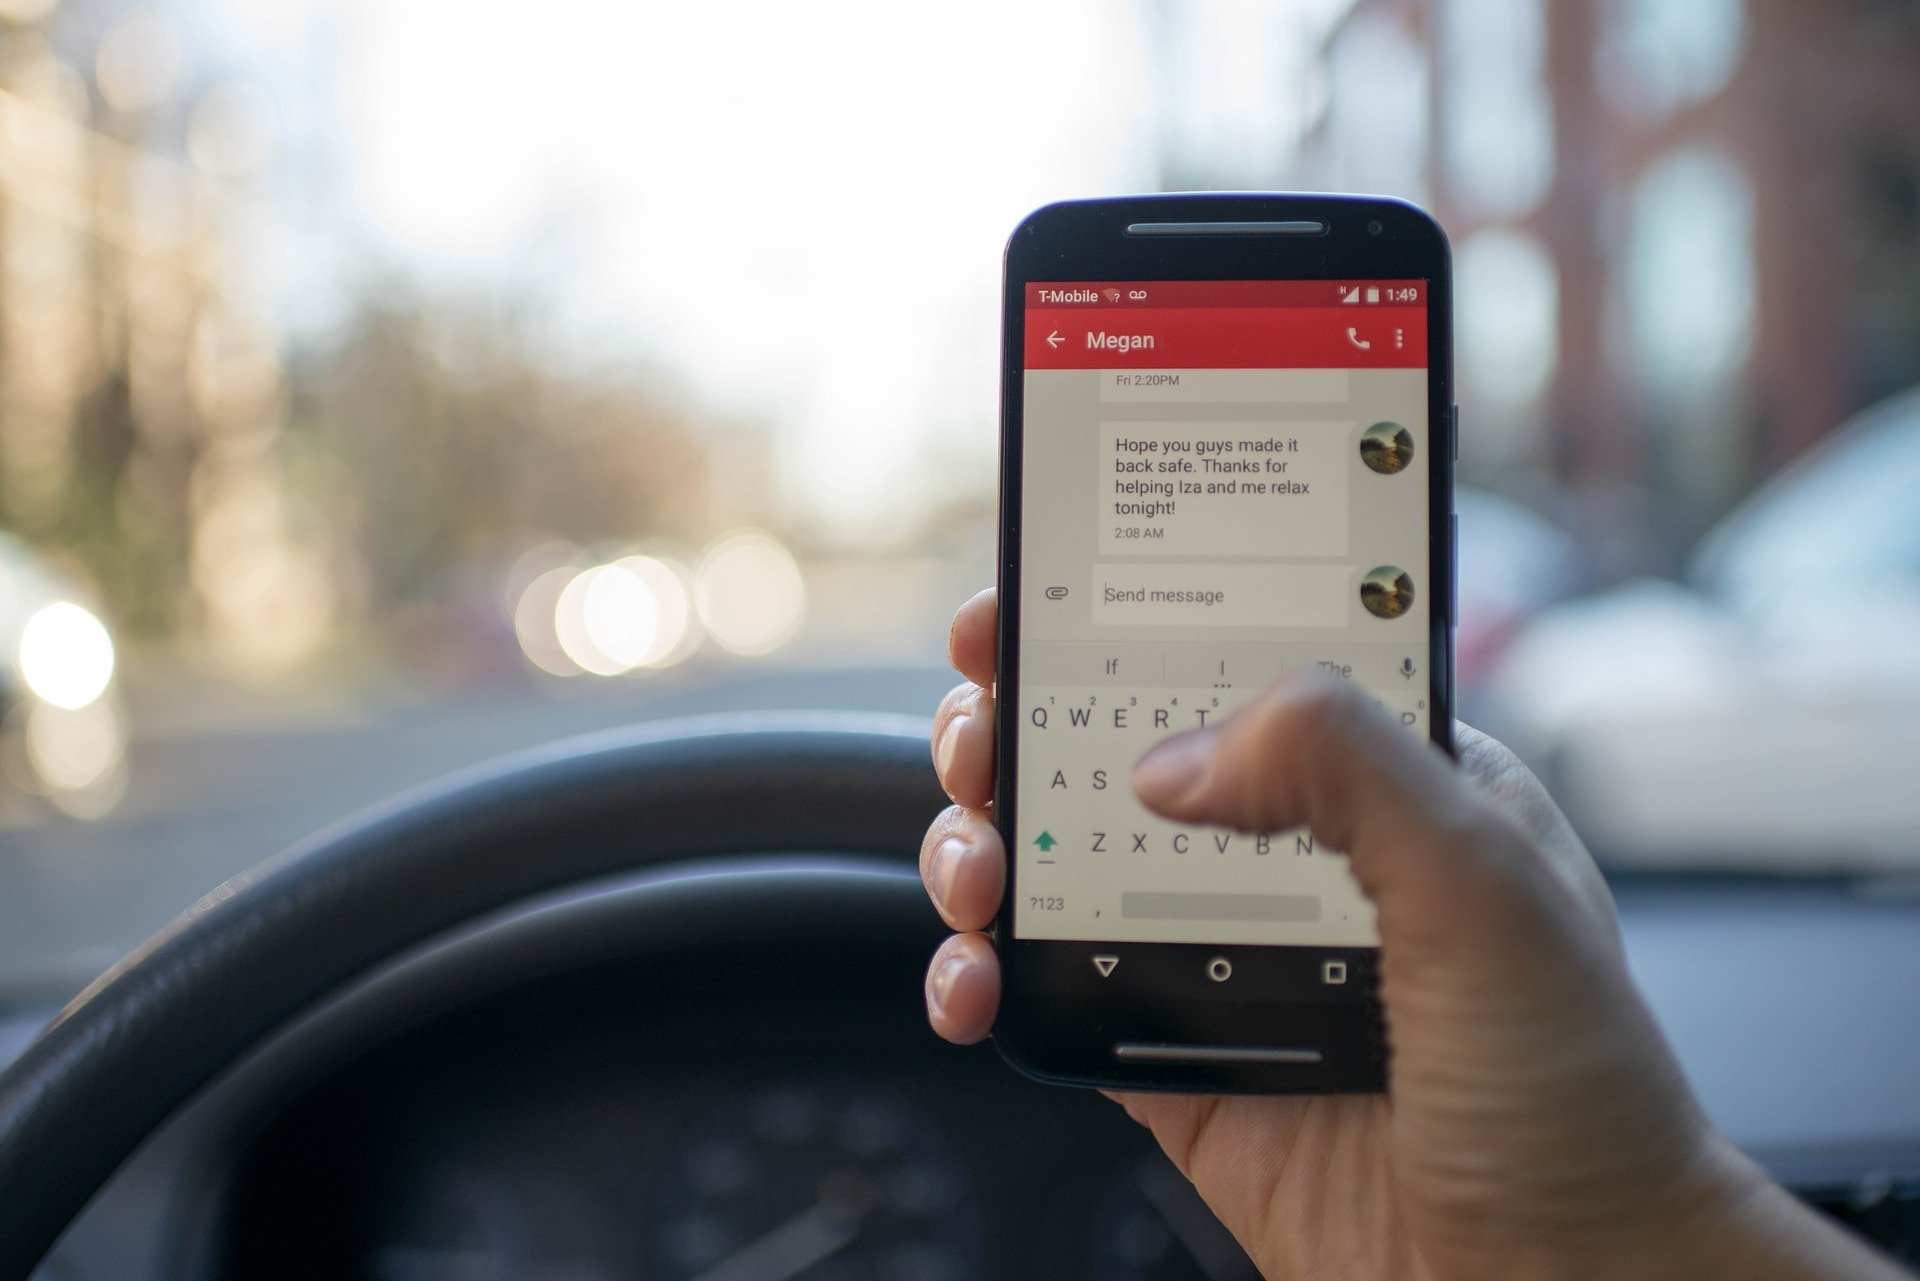 Majority of drivers don t believe texting while driving is dangerous